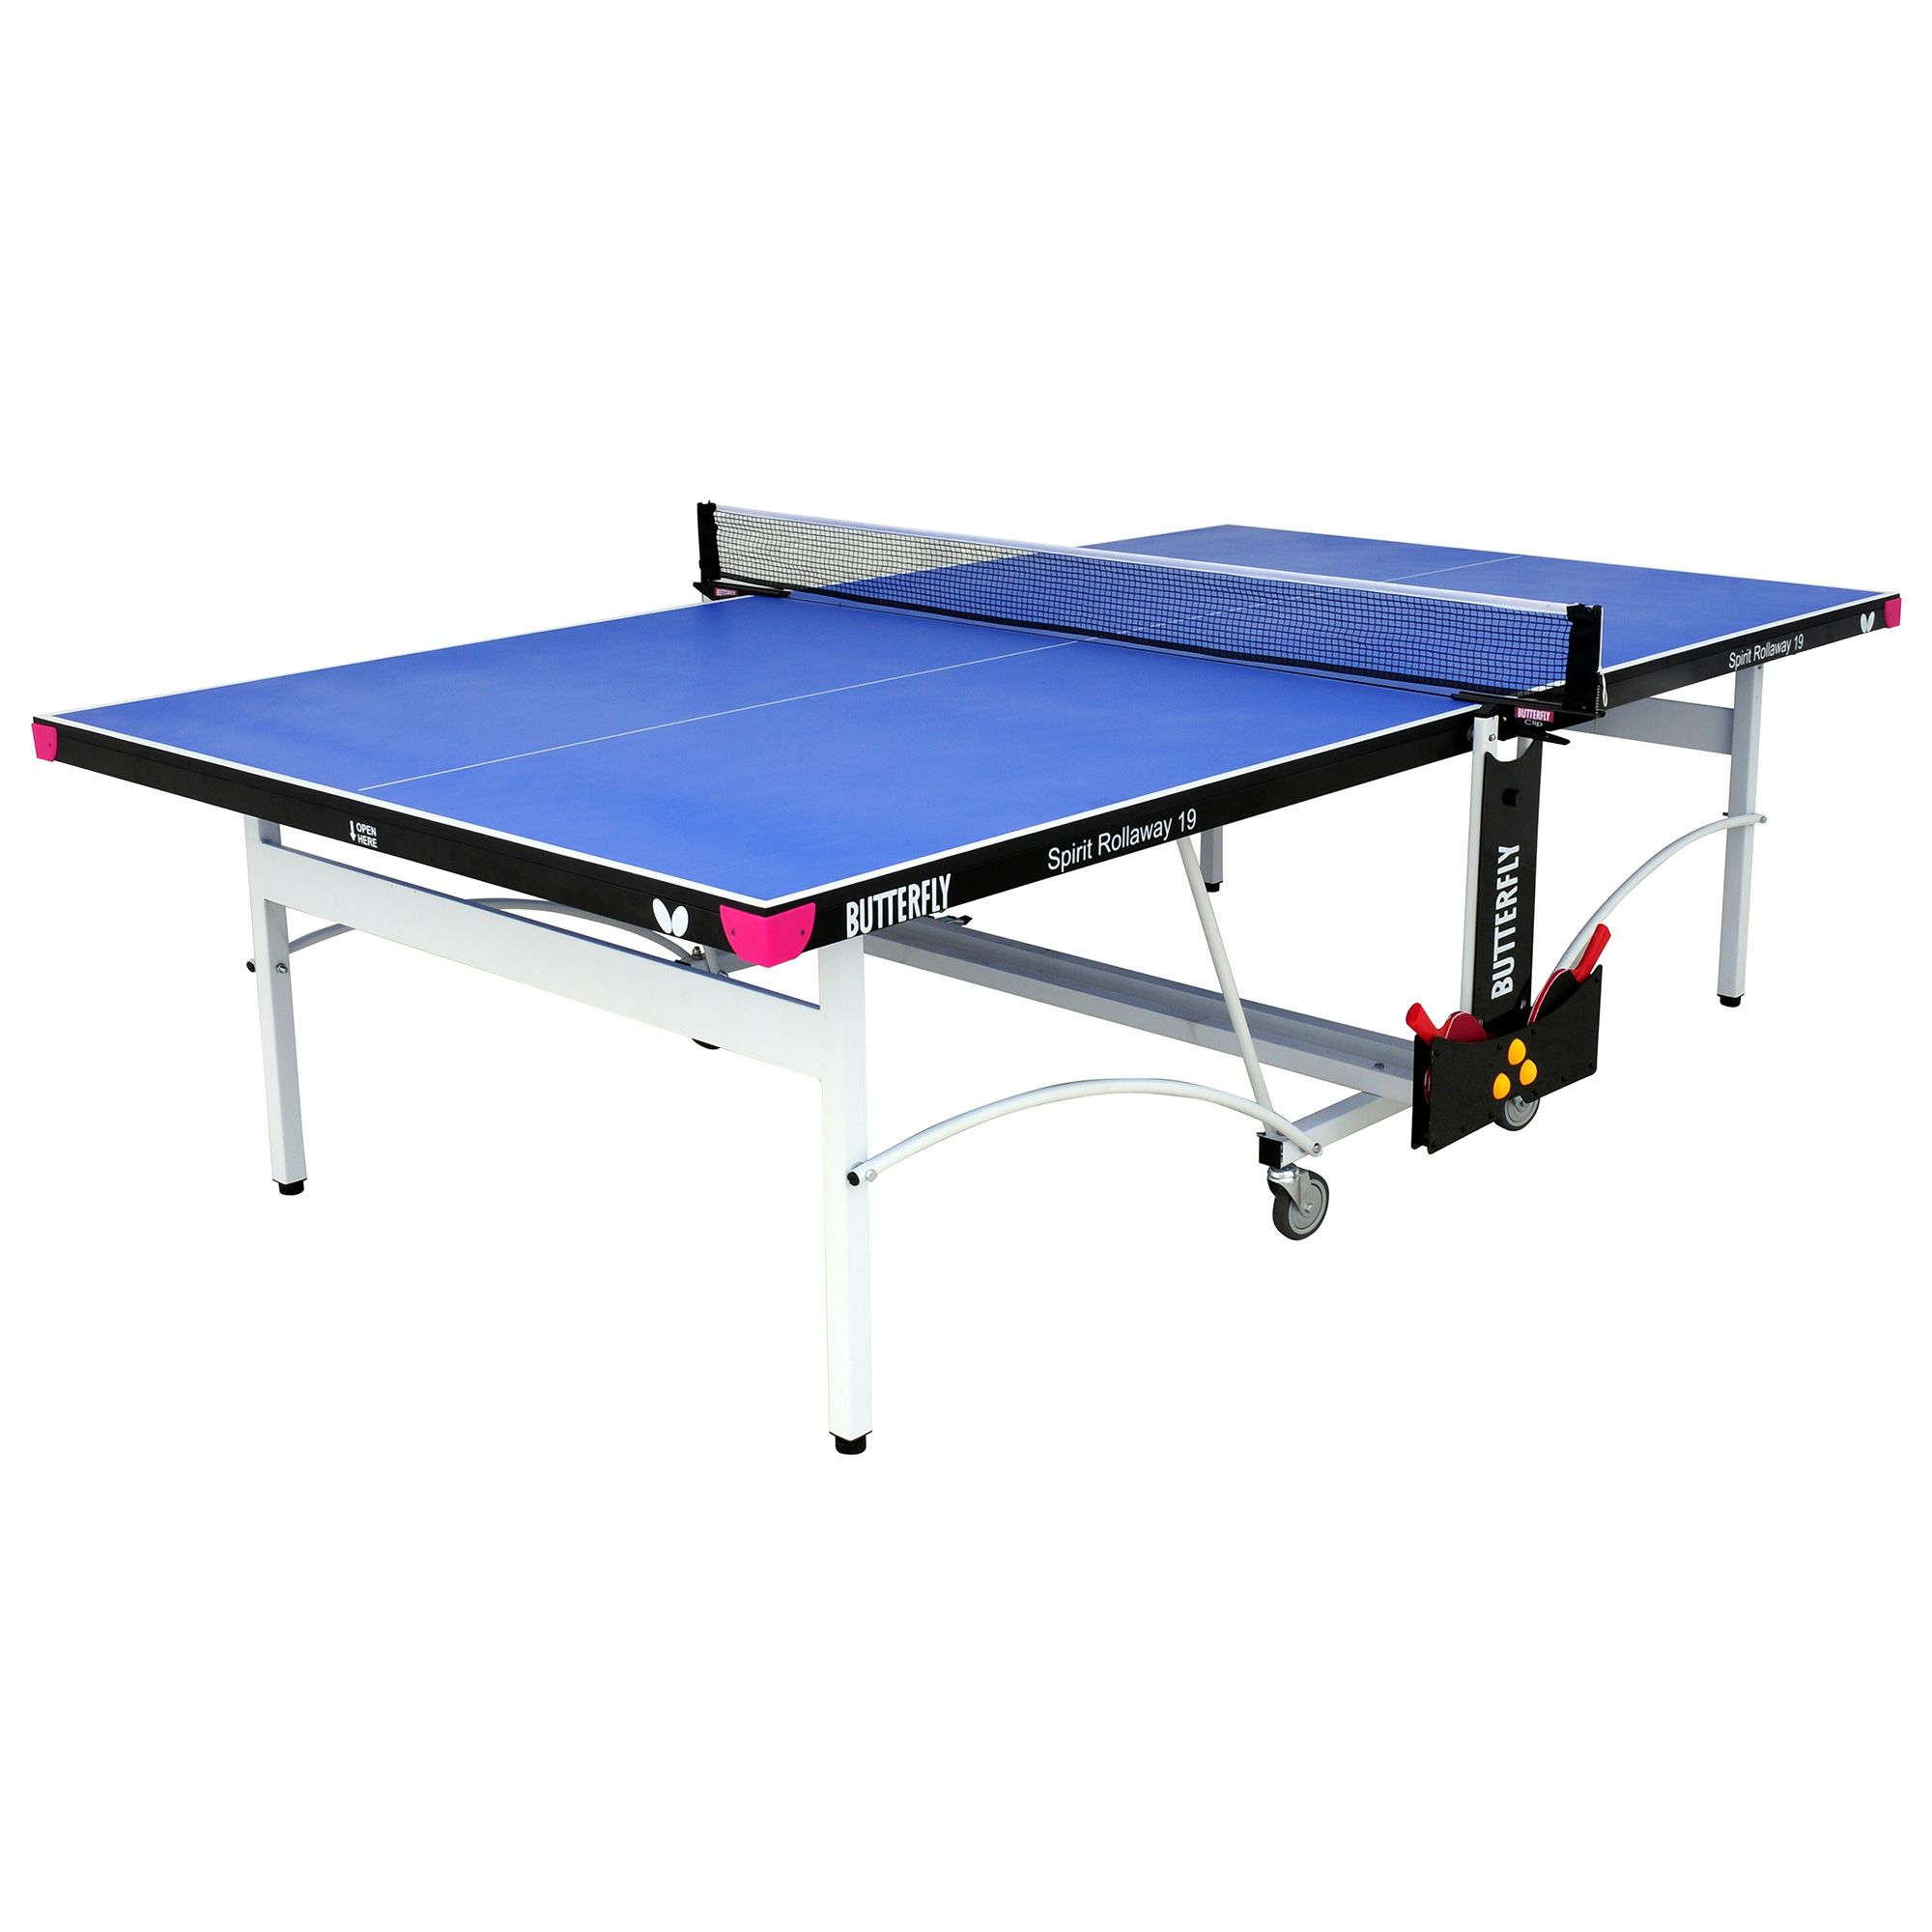 Butterfly Spirit 19 Rollaway Indoor Table Tennis Table